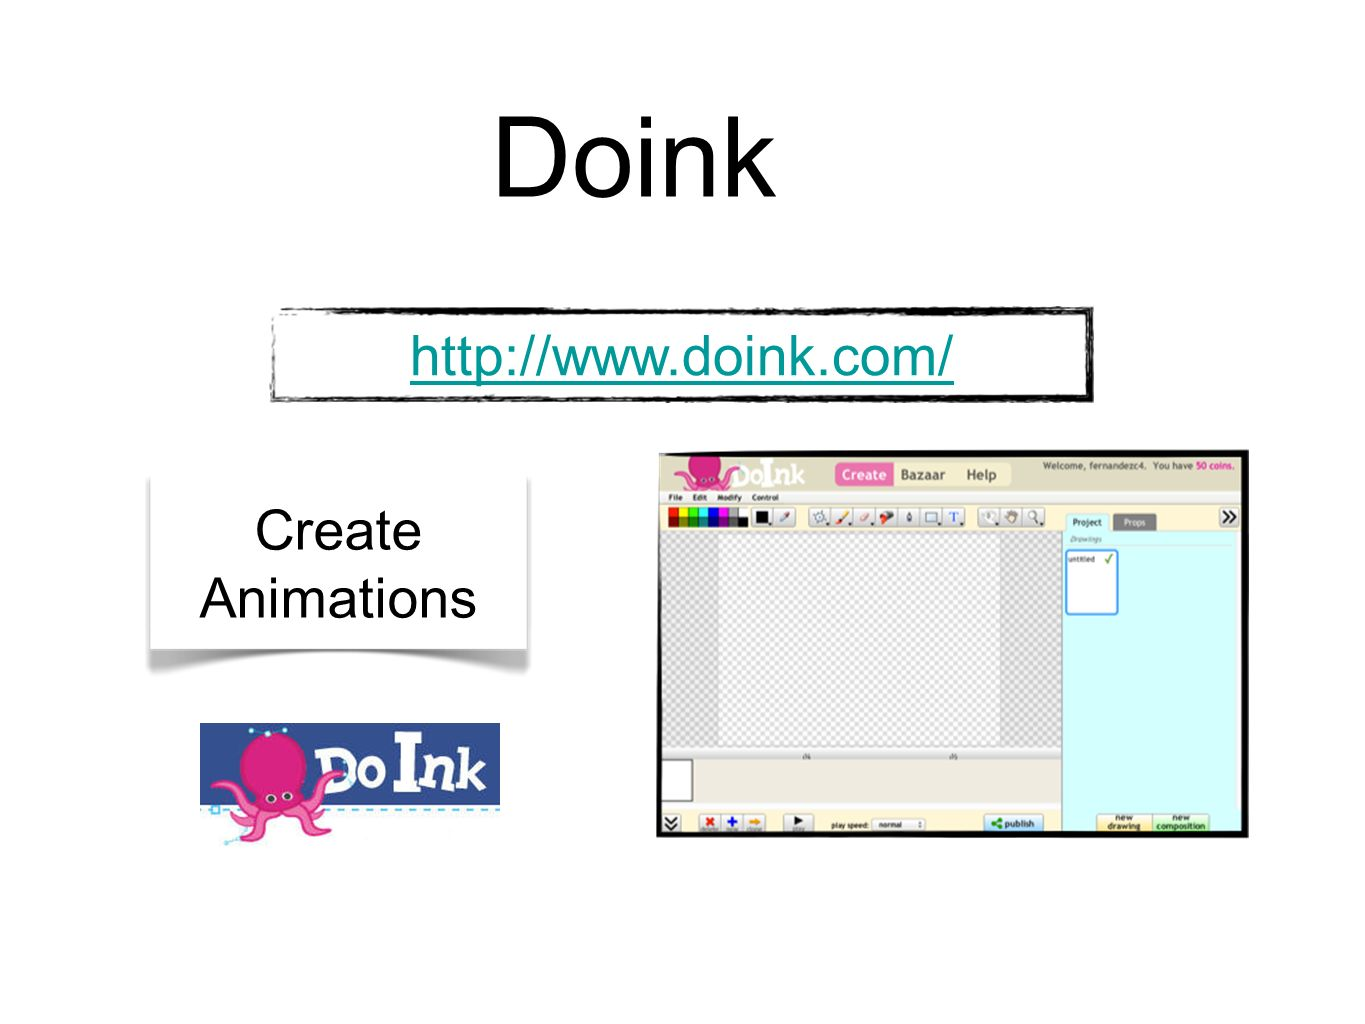 Doink http://www.doink.com/ Create Animations